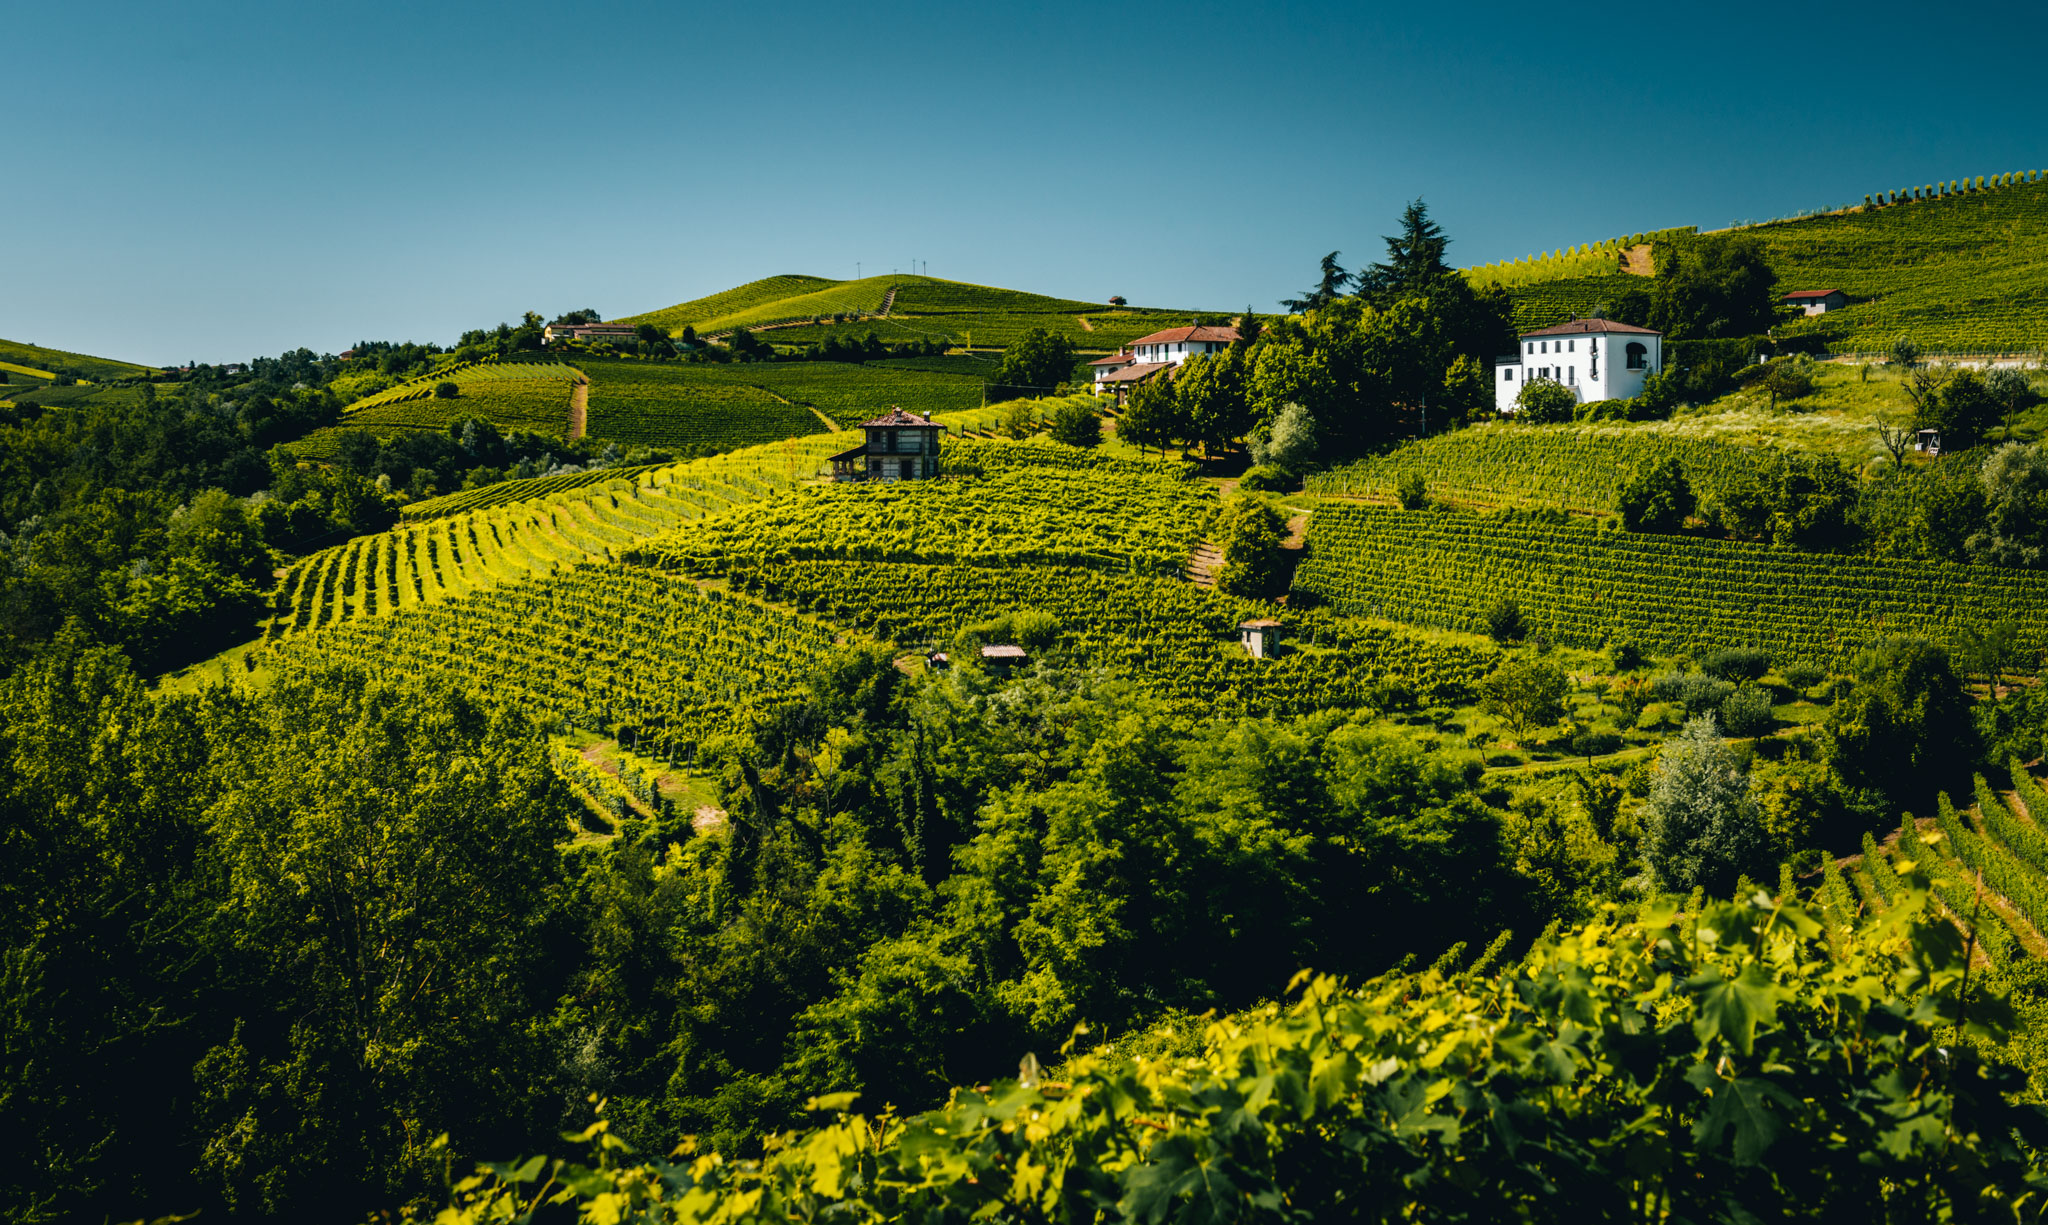 Italy : Piedmont : Le Coste vineyard in the foreground, Ravera in the background